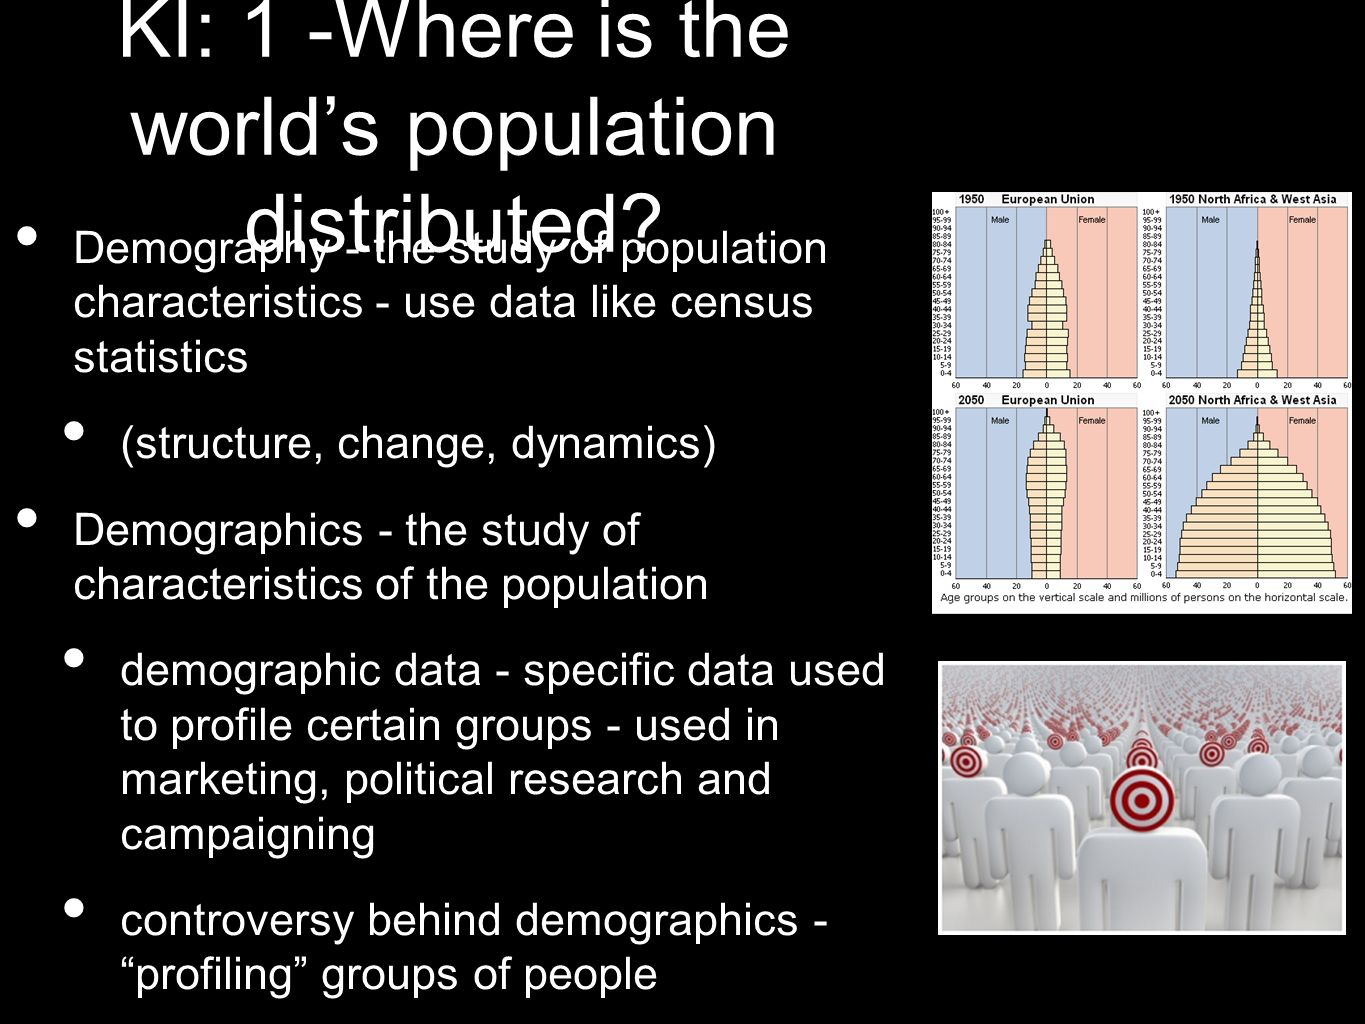 KI: 1 -Where is the world's population distributed